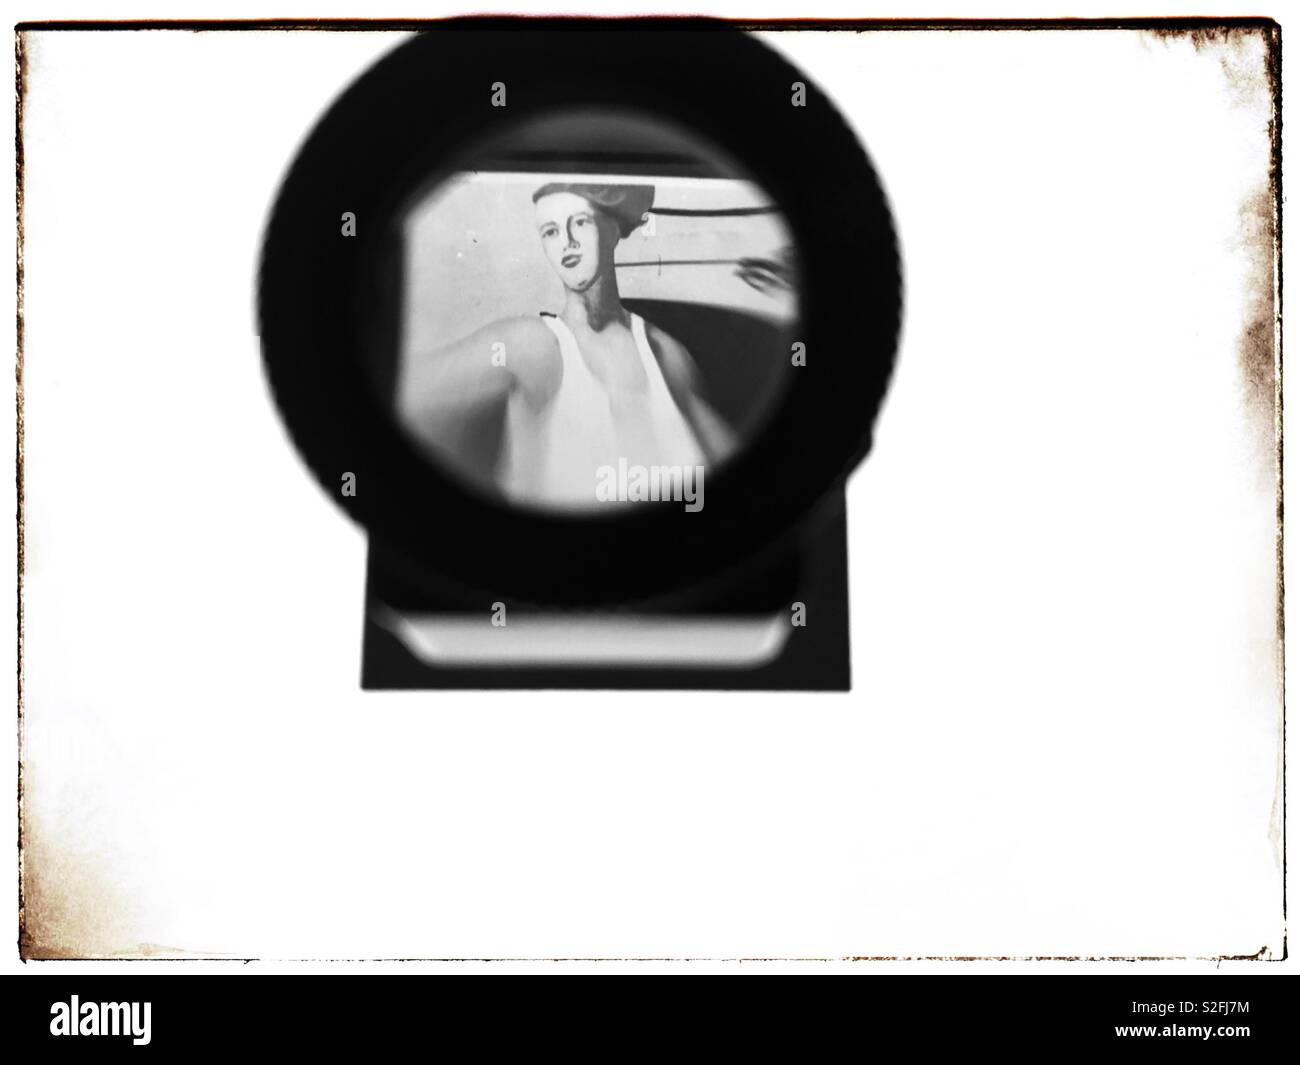 Soviet era political propaganda poster from the 1930's viewed on a slide on a Lightbox - Stock Image